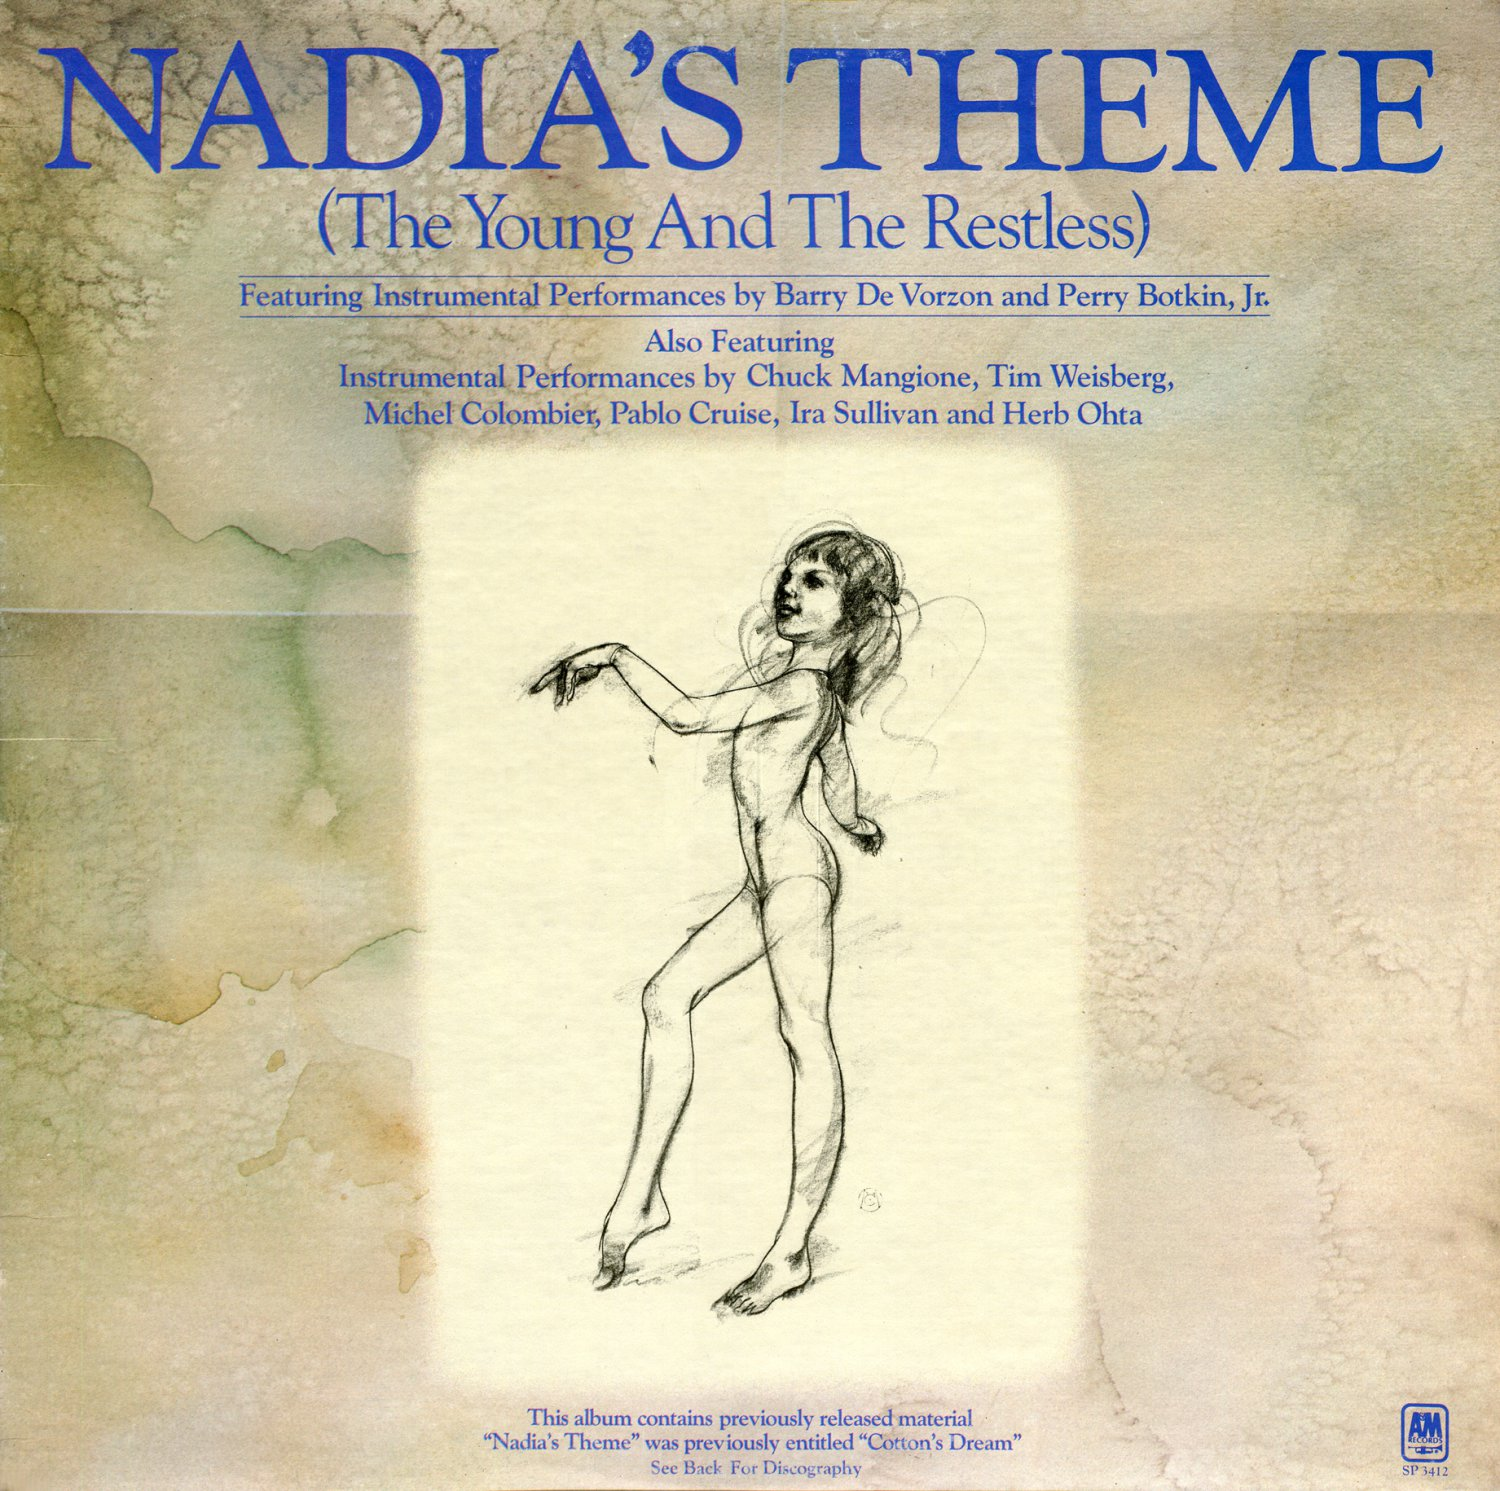 Nadia's Theme (The Young And The Restless) - Soundtrack Collection, Barry De Vorzon OST LP/CD